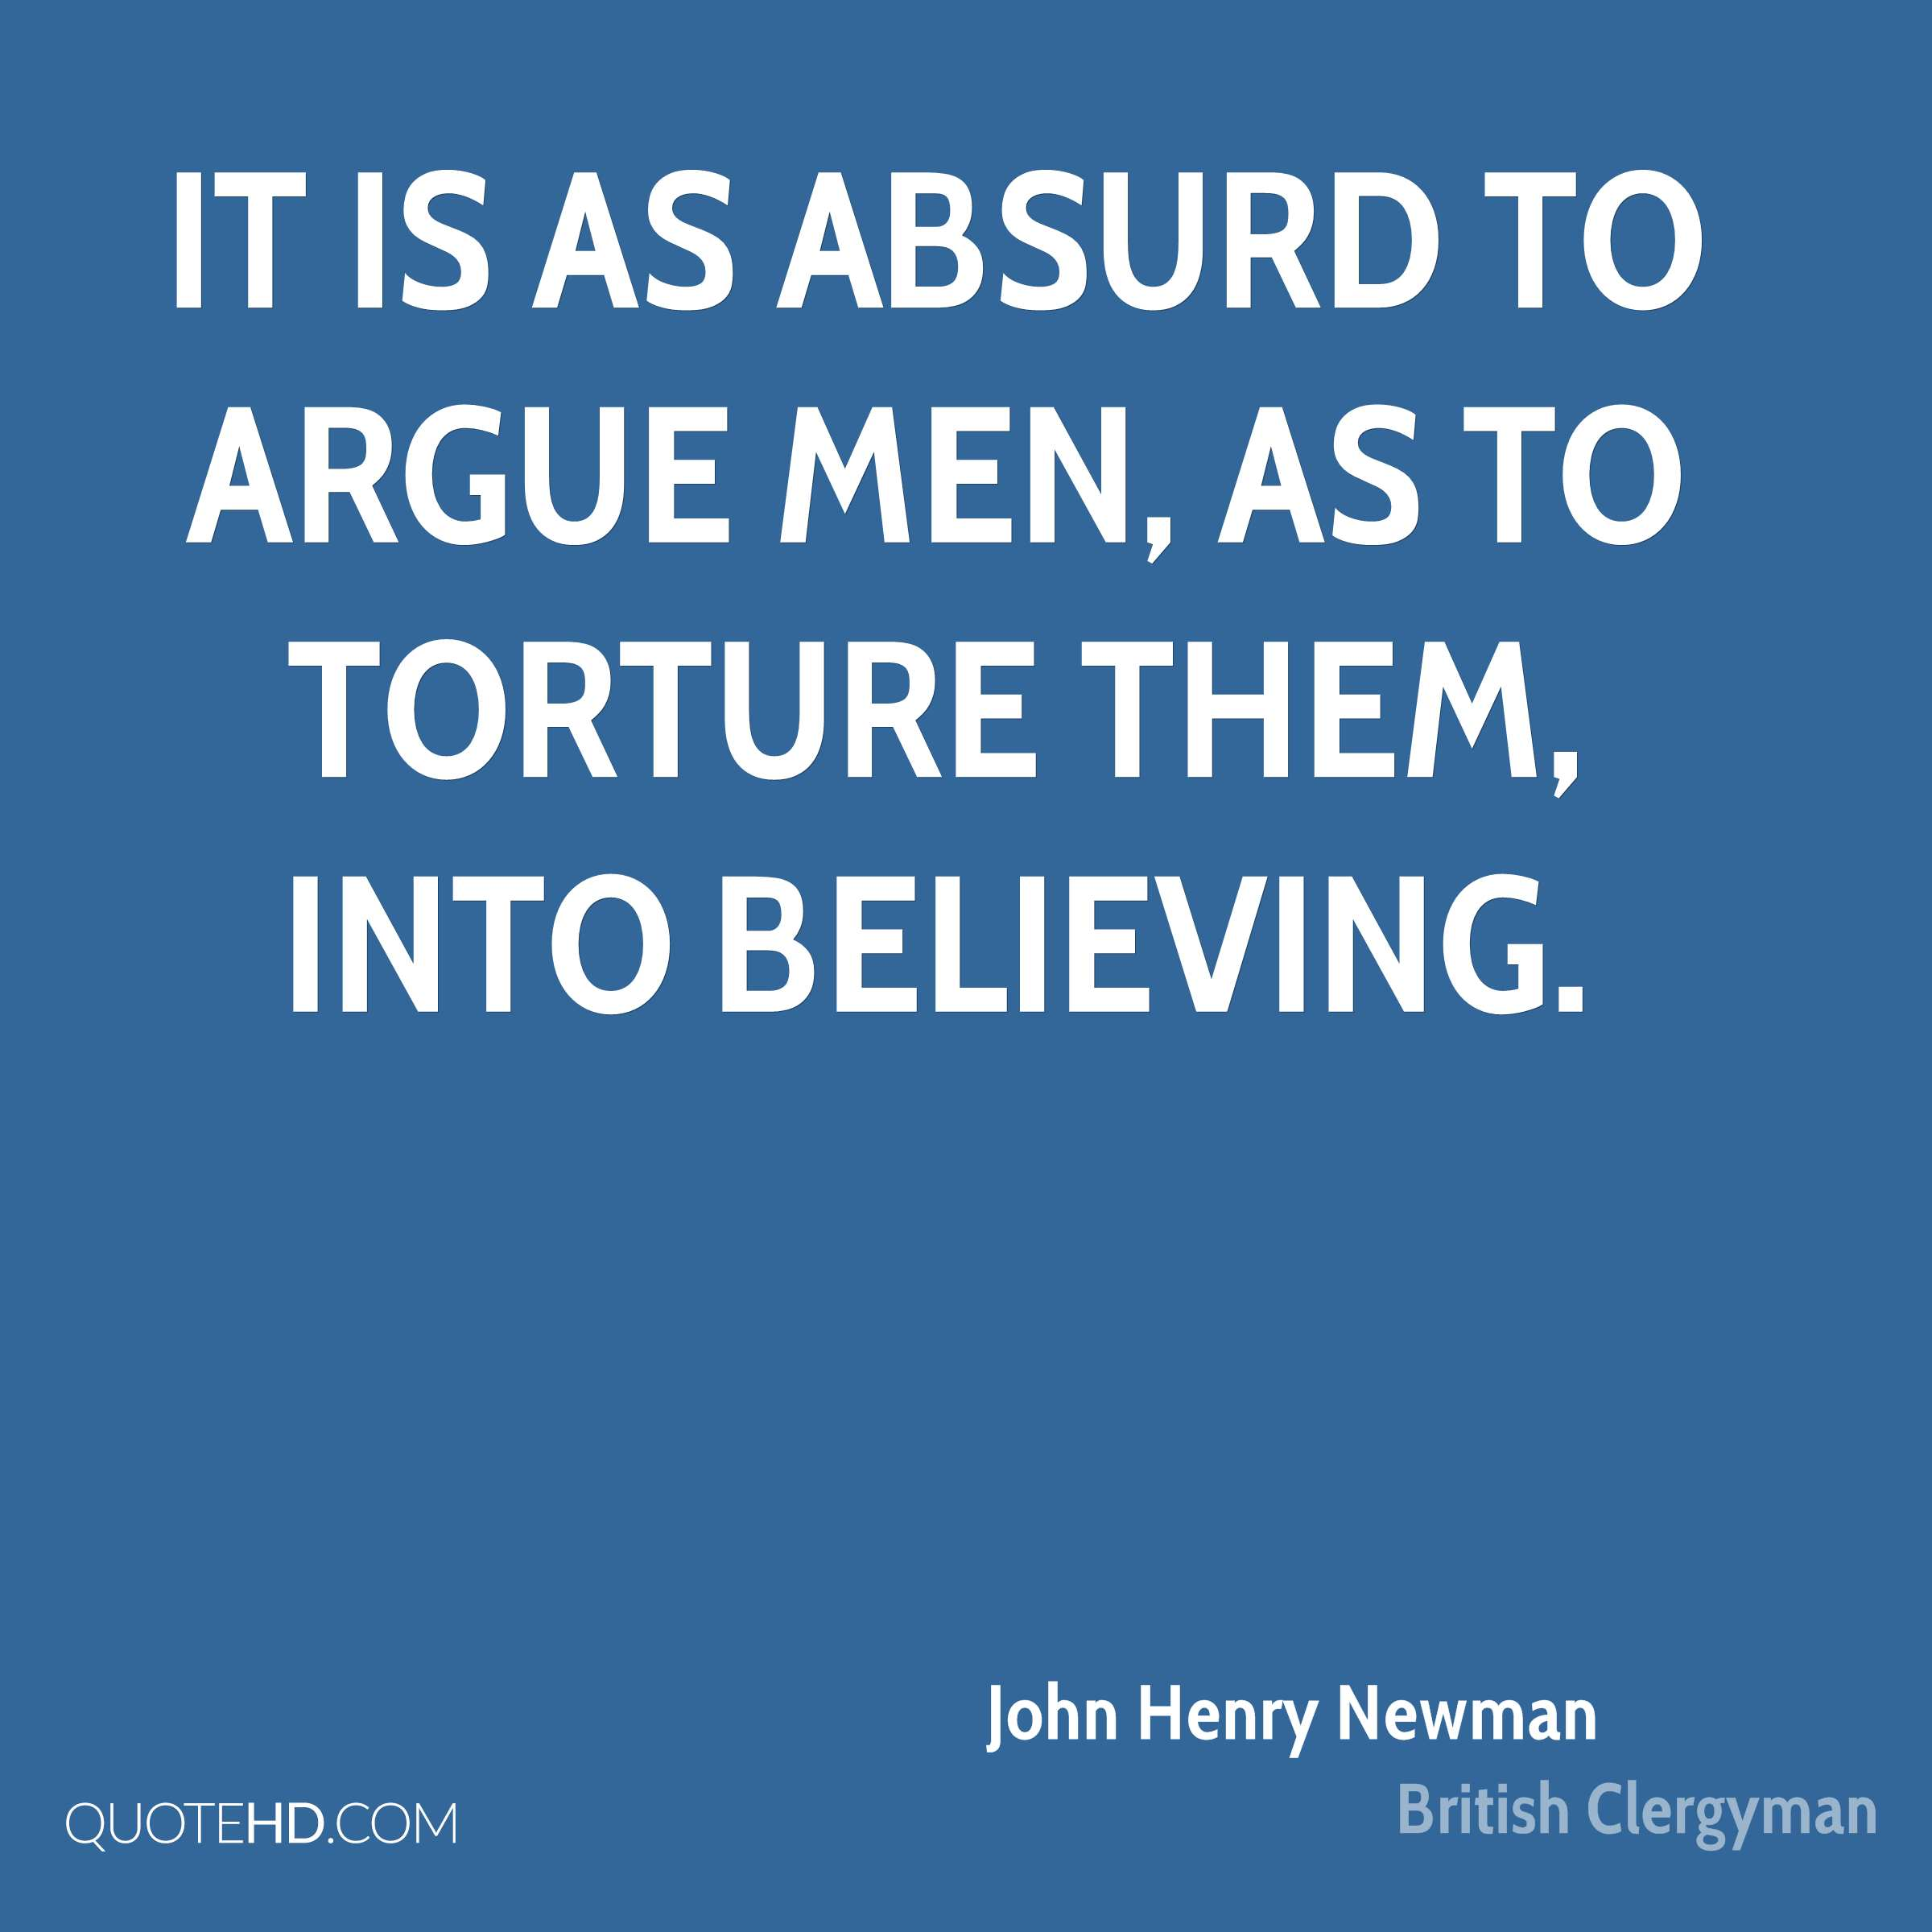 It is as absurd to argue men, as to torture them, into believing.